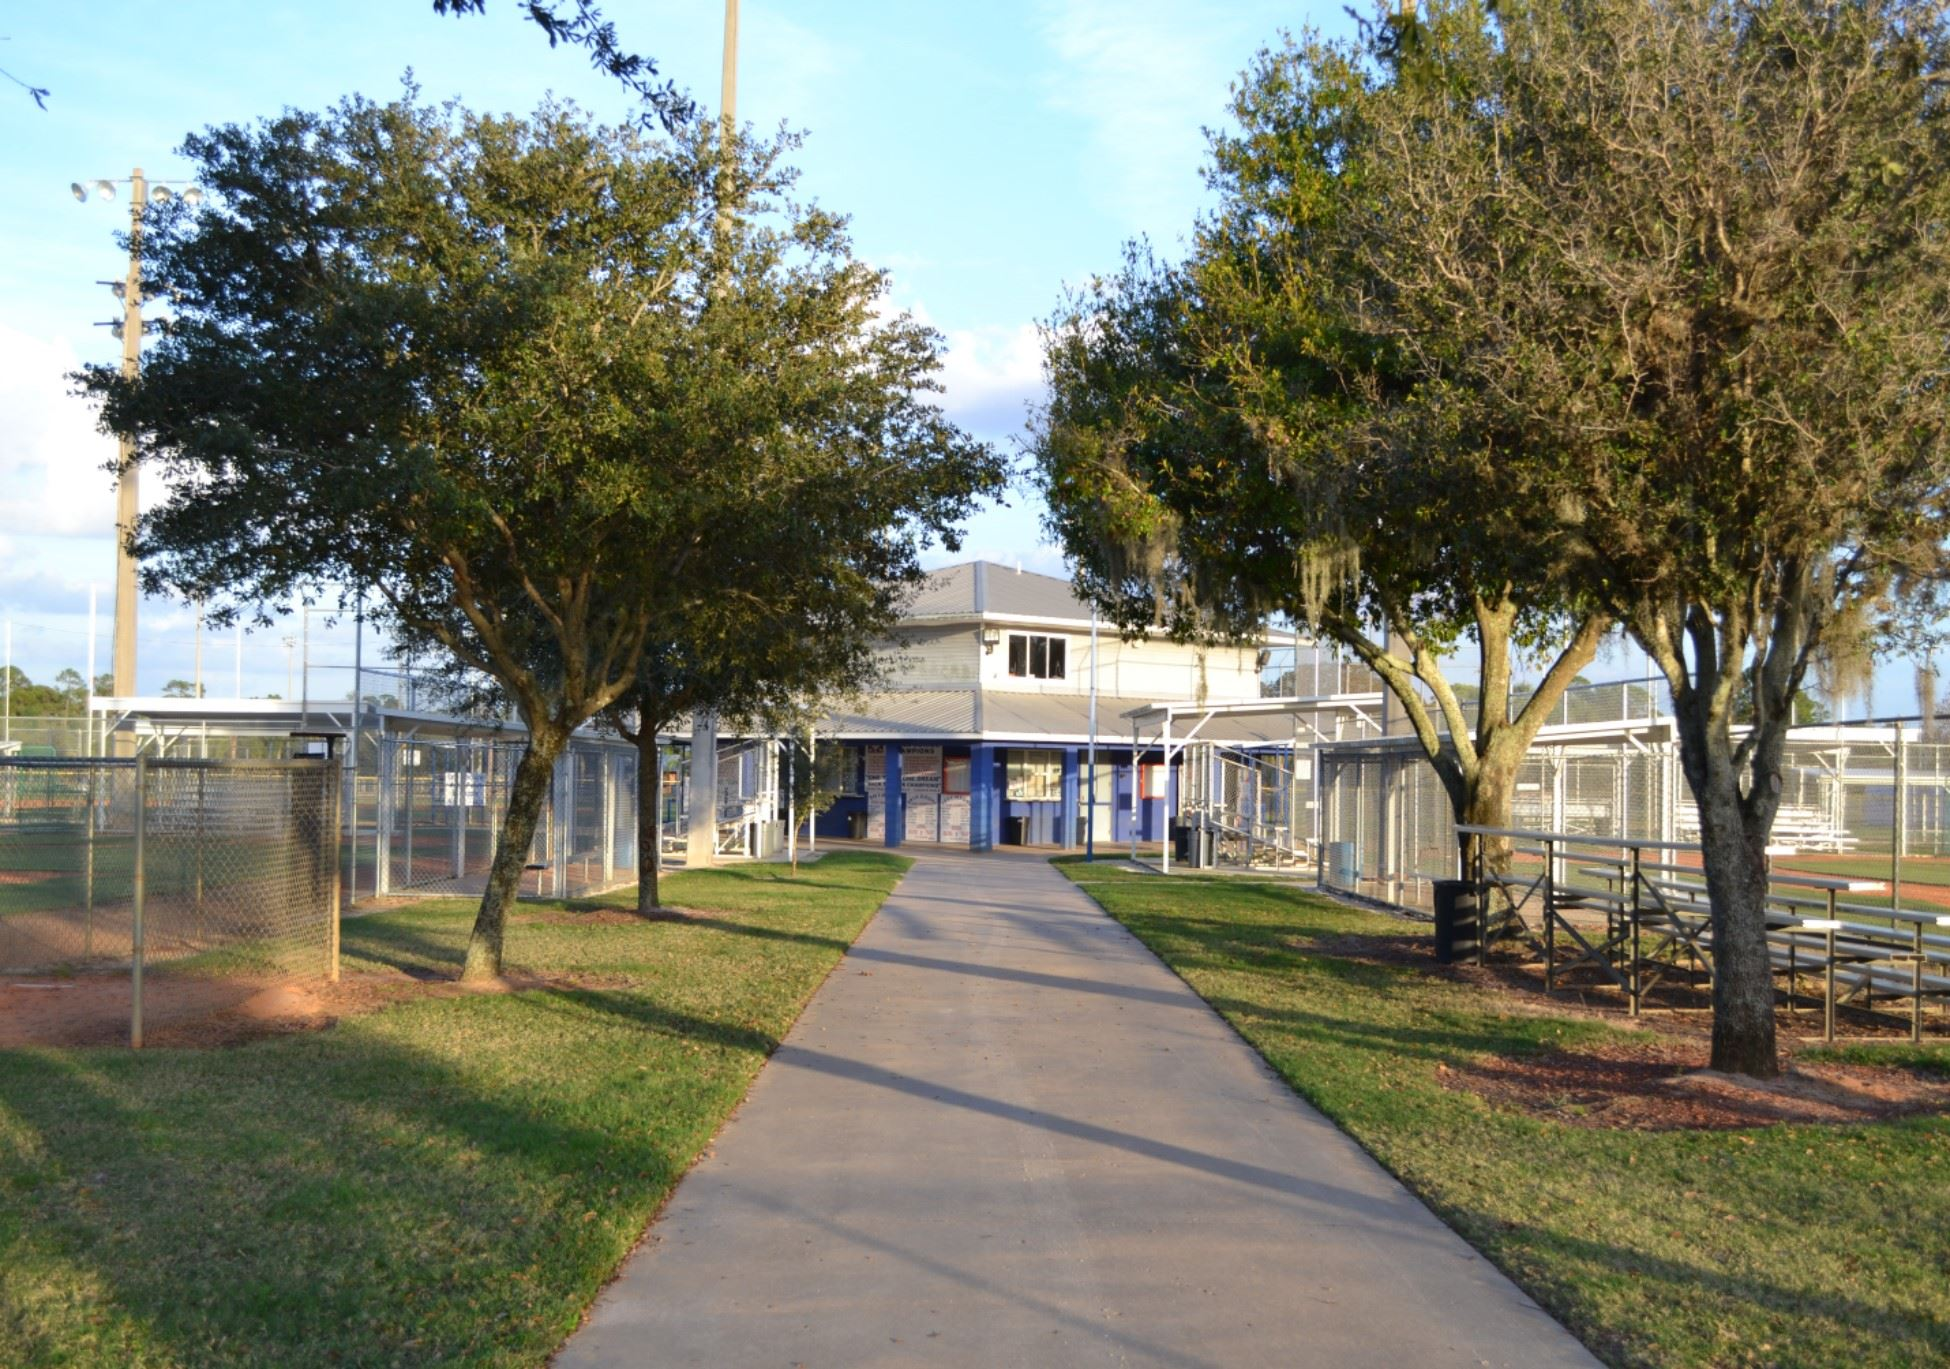 view walking up the sidewalk toward the baseball fields and concession stand